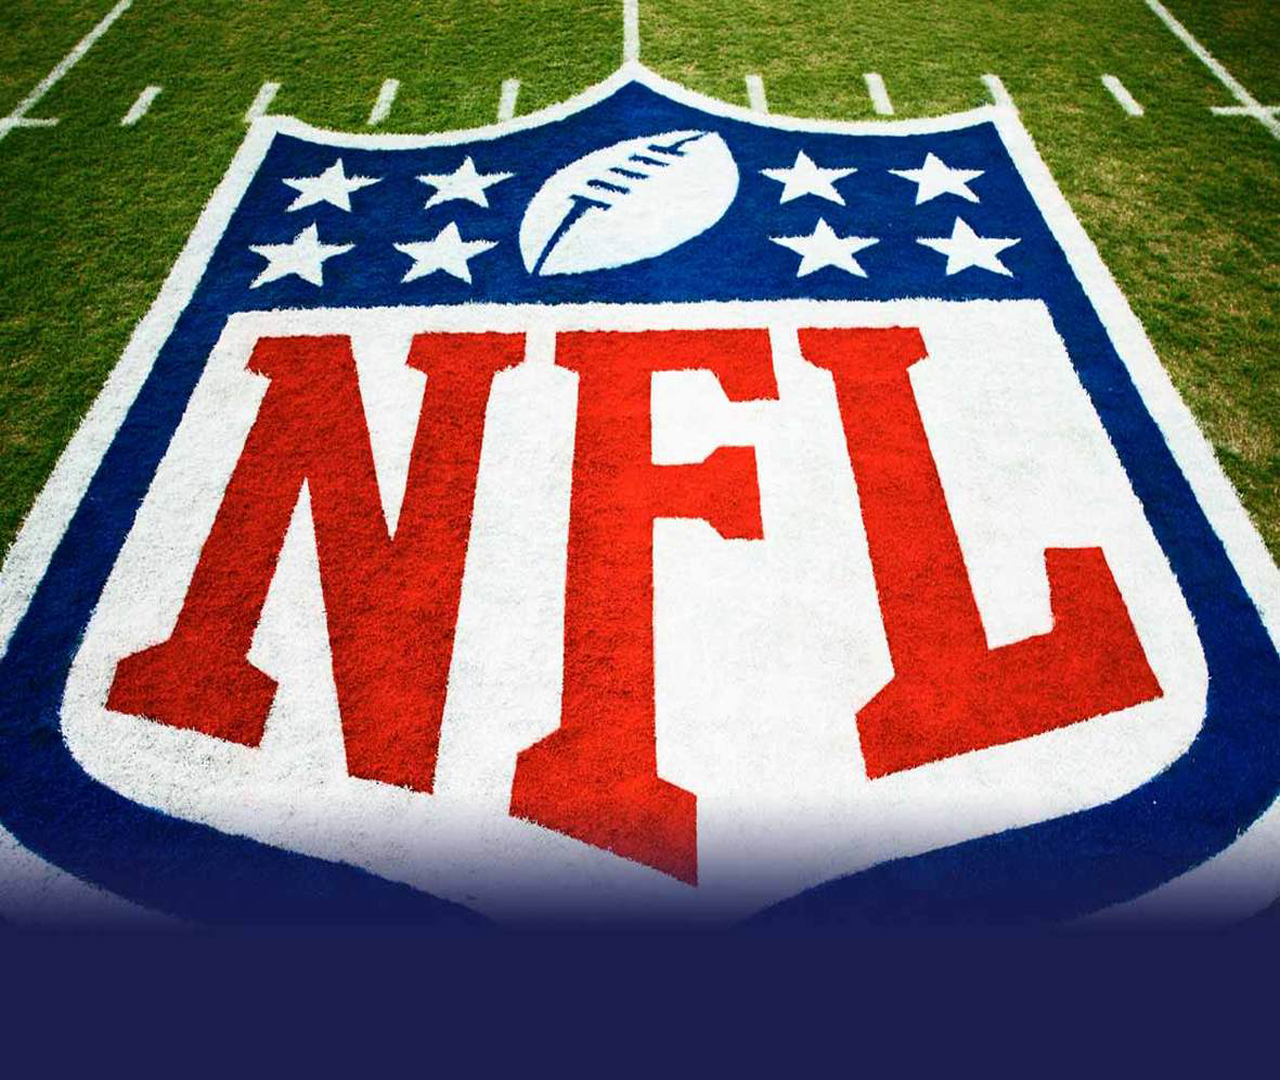 Nfl: Free Download NFL Football HD Wallpapers For